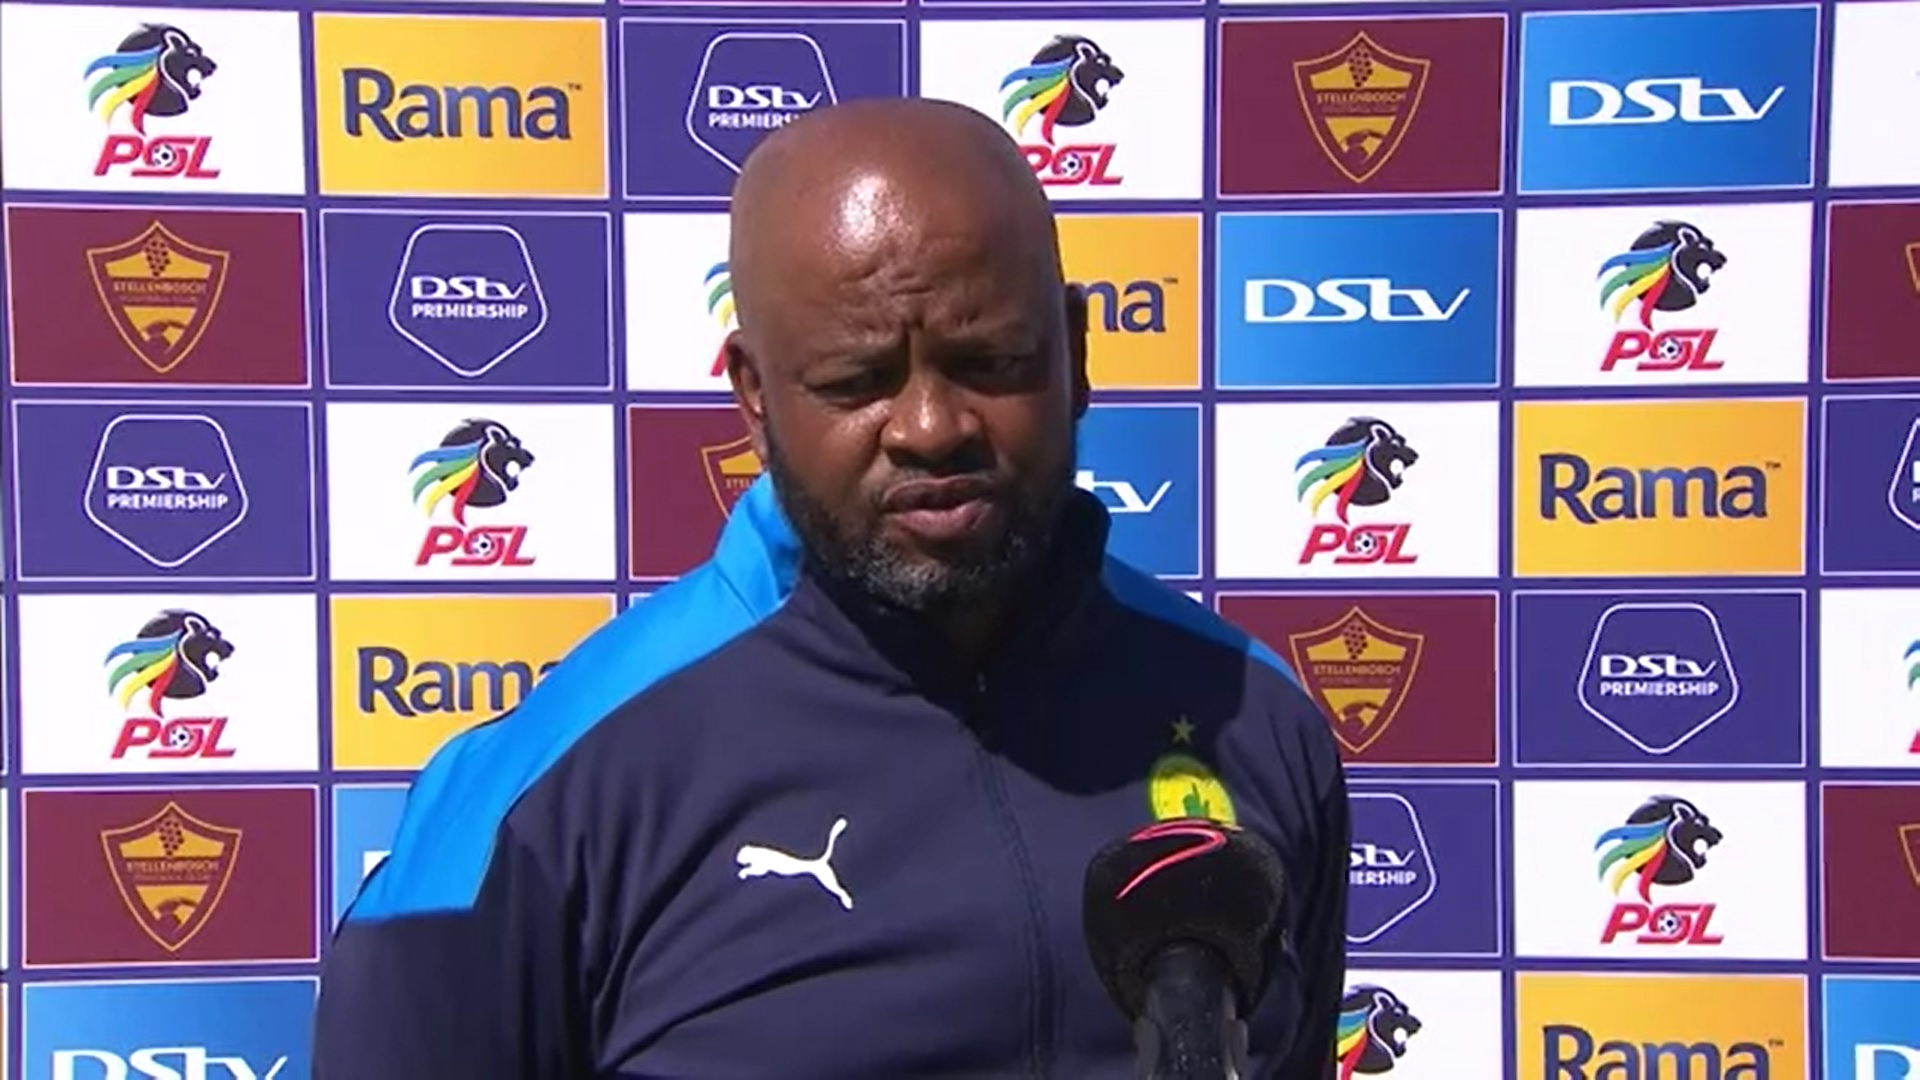 DStv Premiership | Stellenbosch FC v Mamelodi Sundowns | Post-match interview with Manqoba Mngqithi